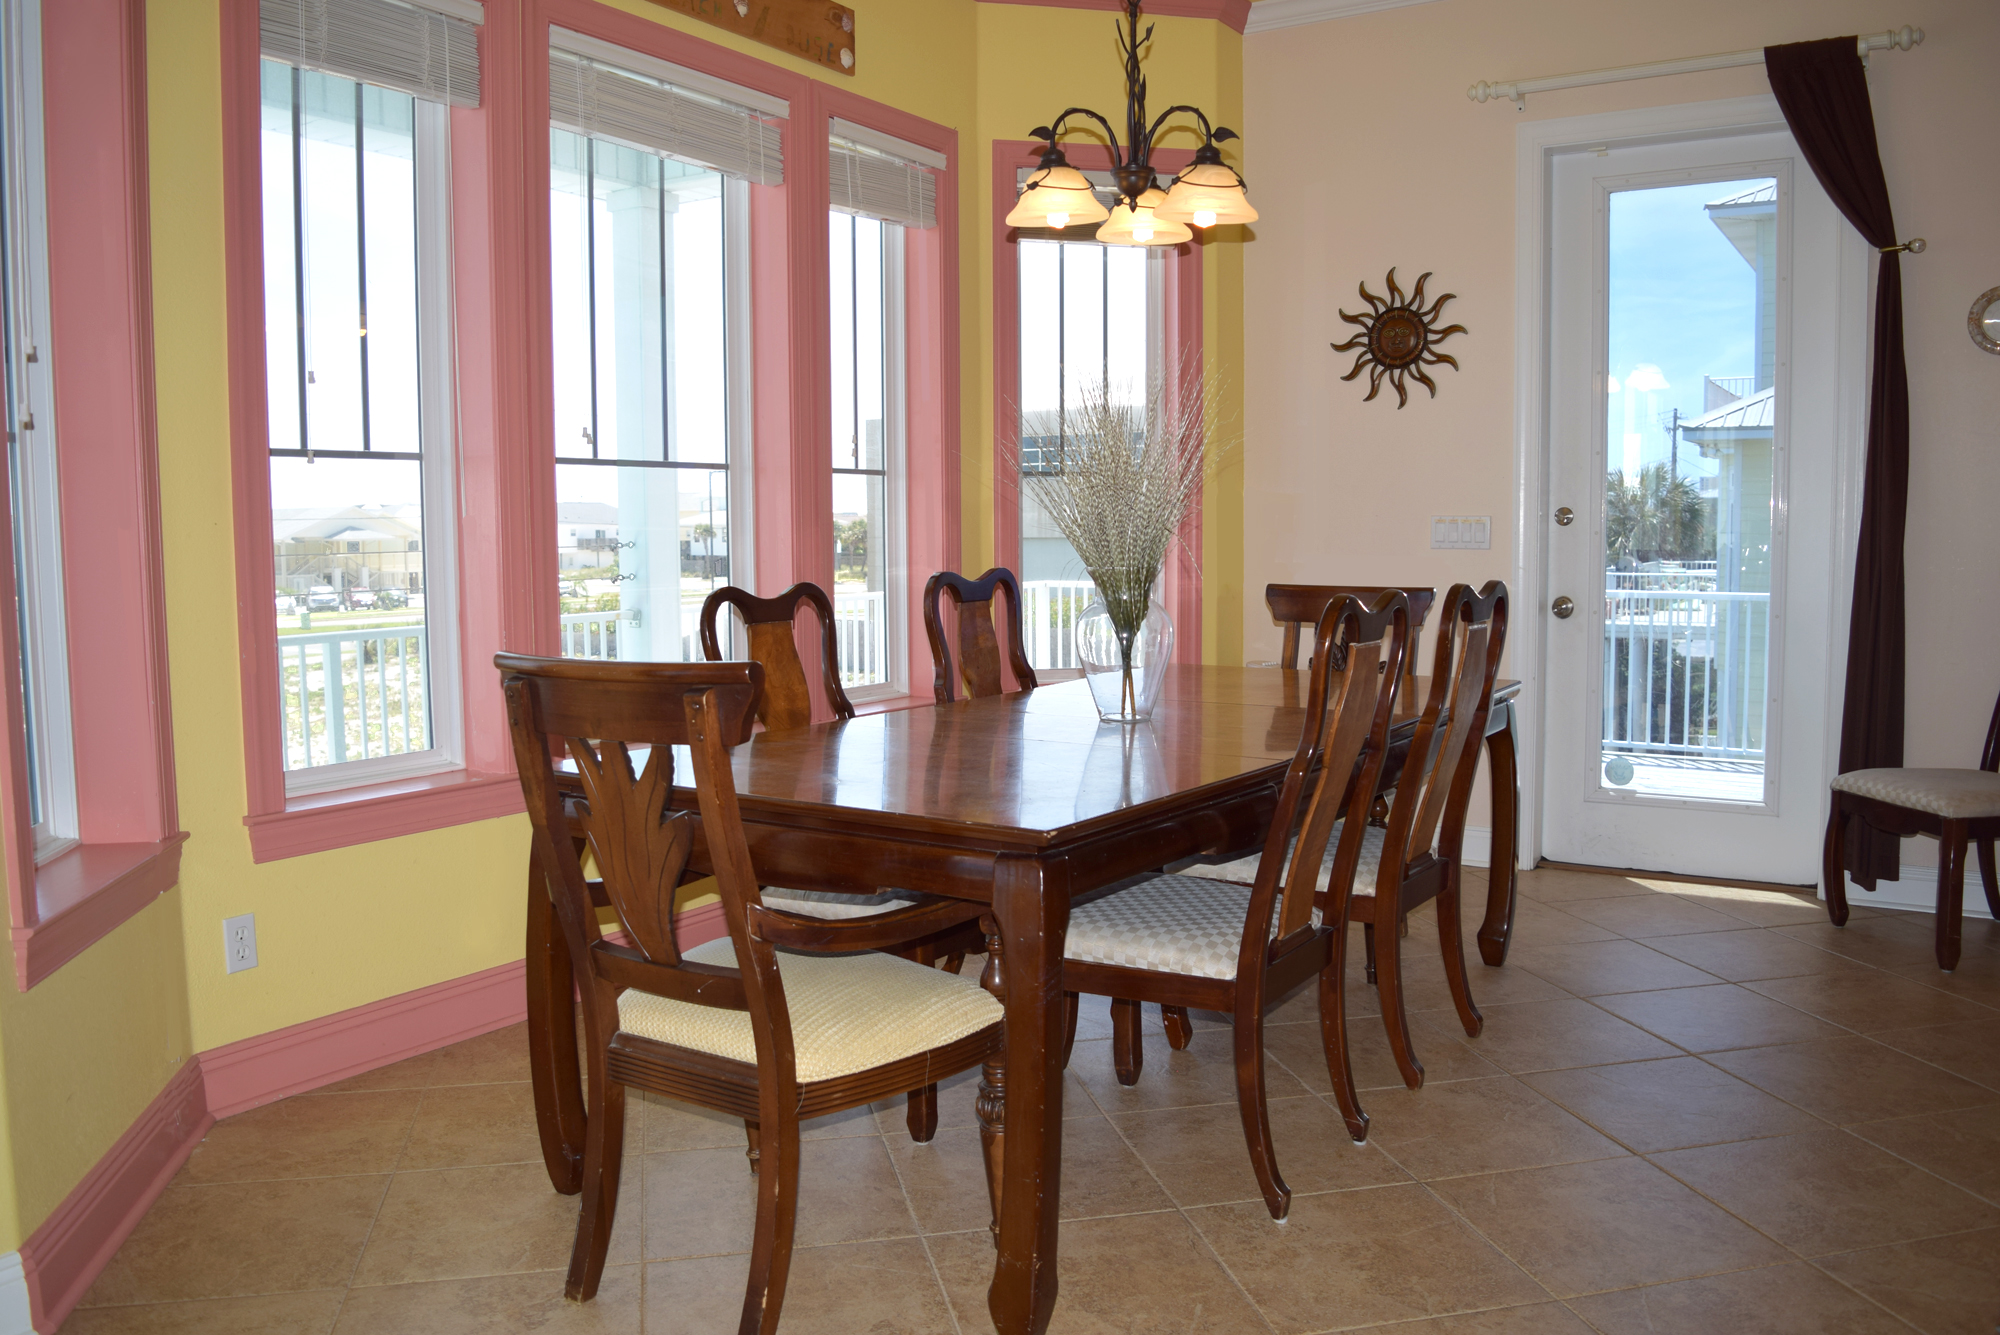 Panferio 906 - Blue Marlin House/Cottage rental in Pensacola Beach House Rentals in Pensacola Beach Florida - #8